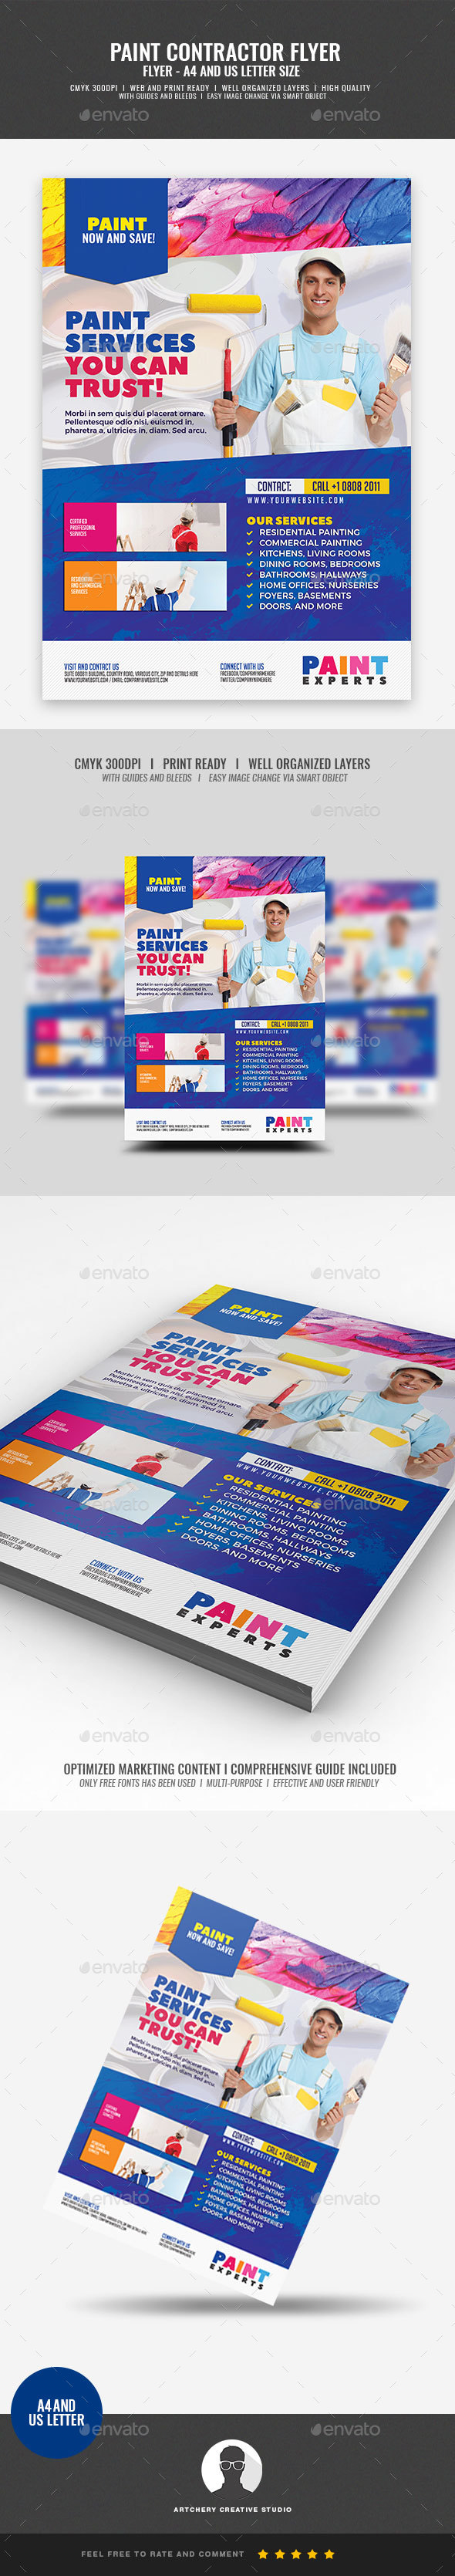 Paint Contractor Flyer - Corporate Flyers